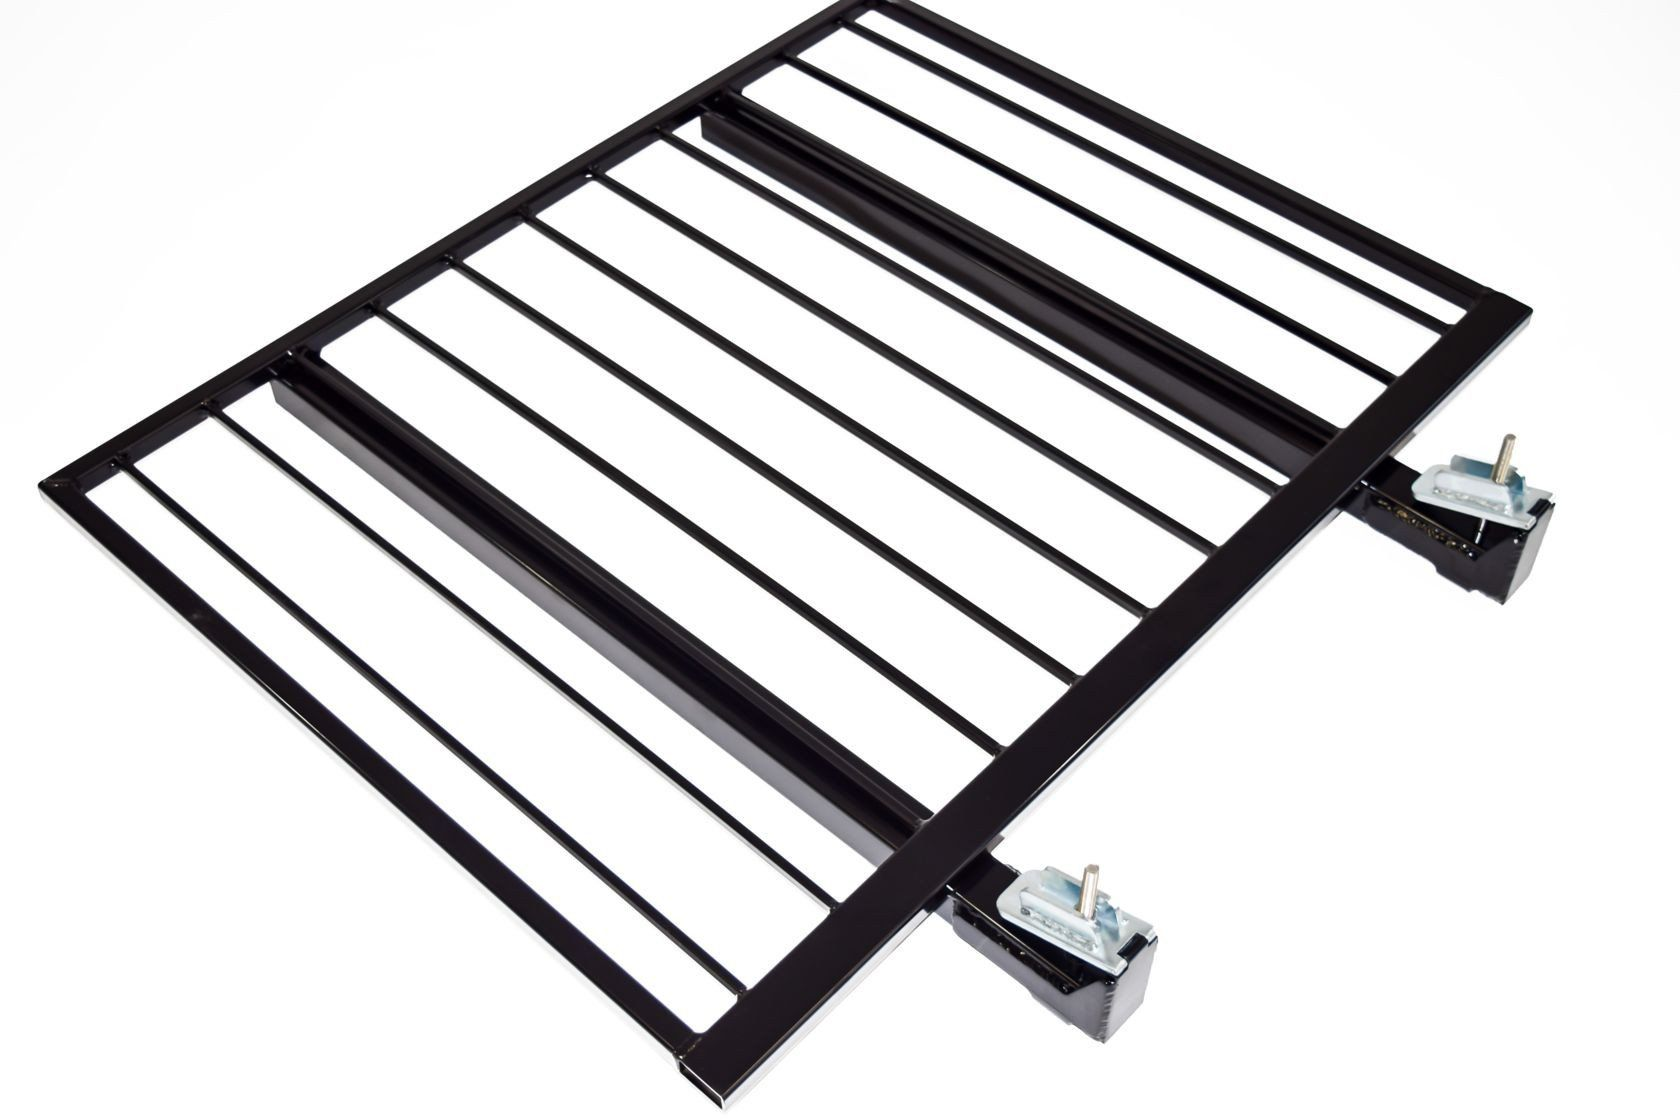 Aluminum Guardrail Frame (Code compliant for public use) Black Finish 4'x42